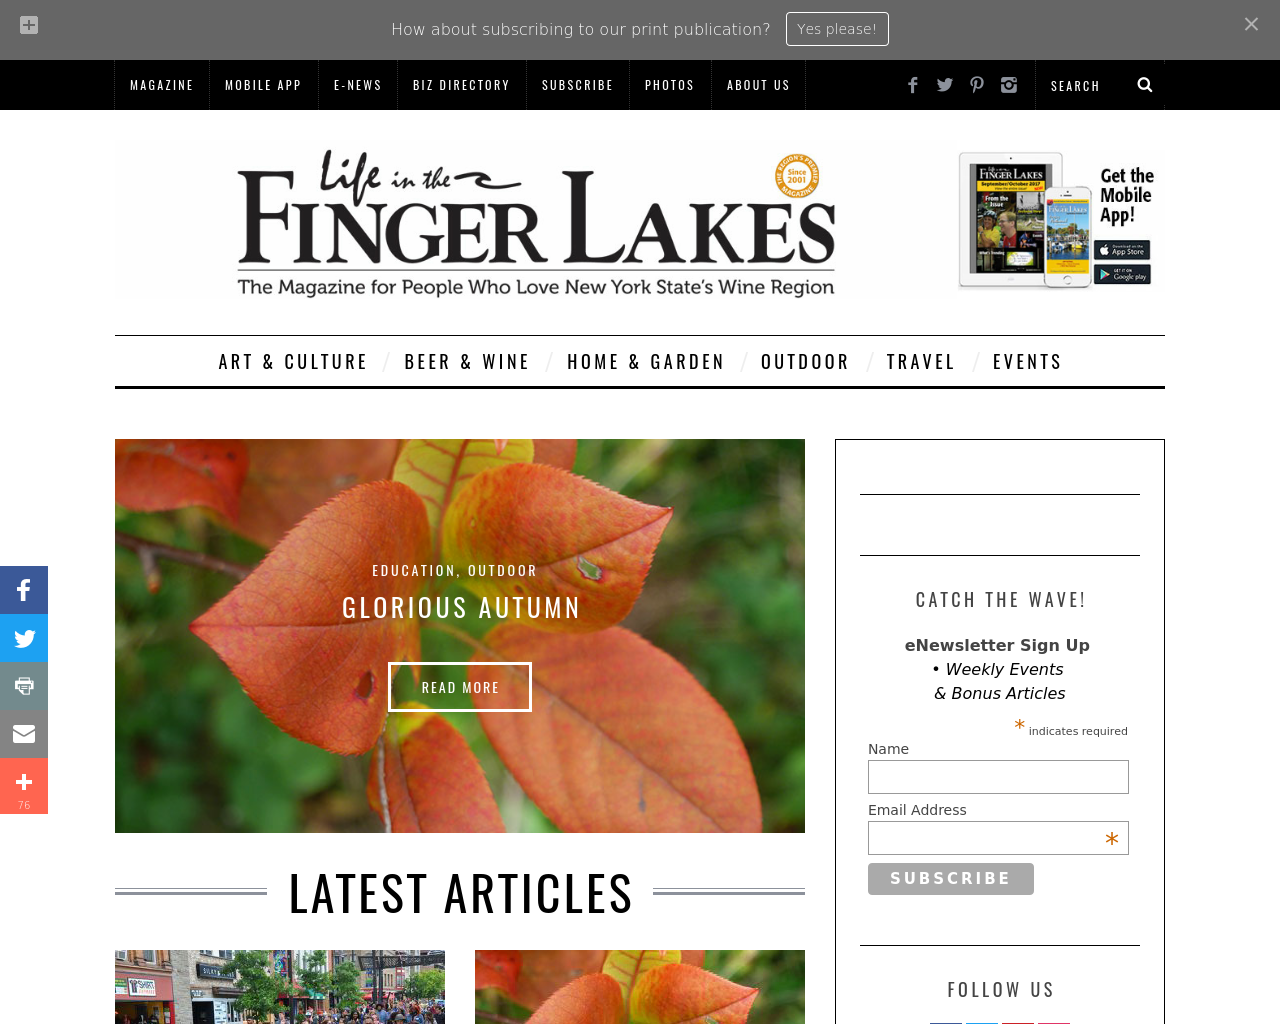 Life-in-the-Finger-Lakes-Advertising-Reviews-Pricing